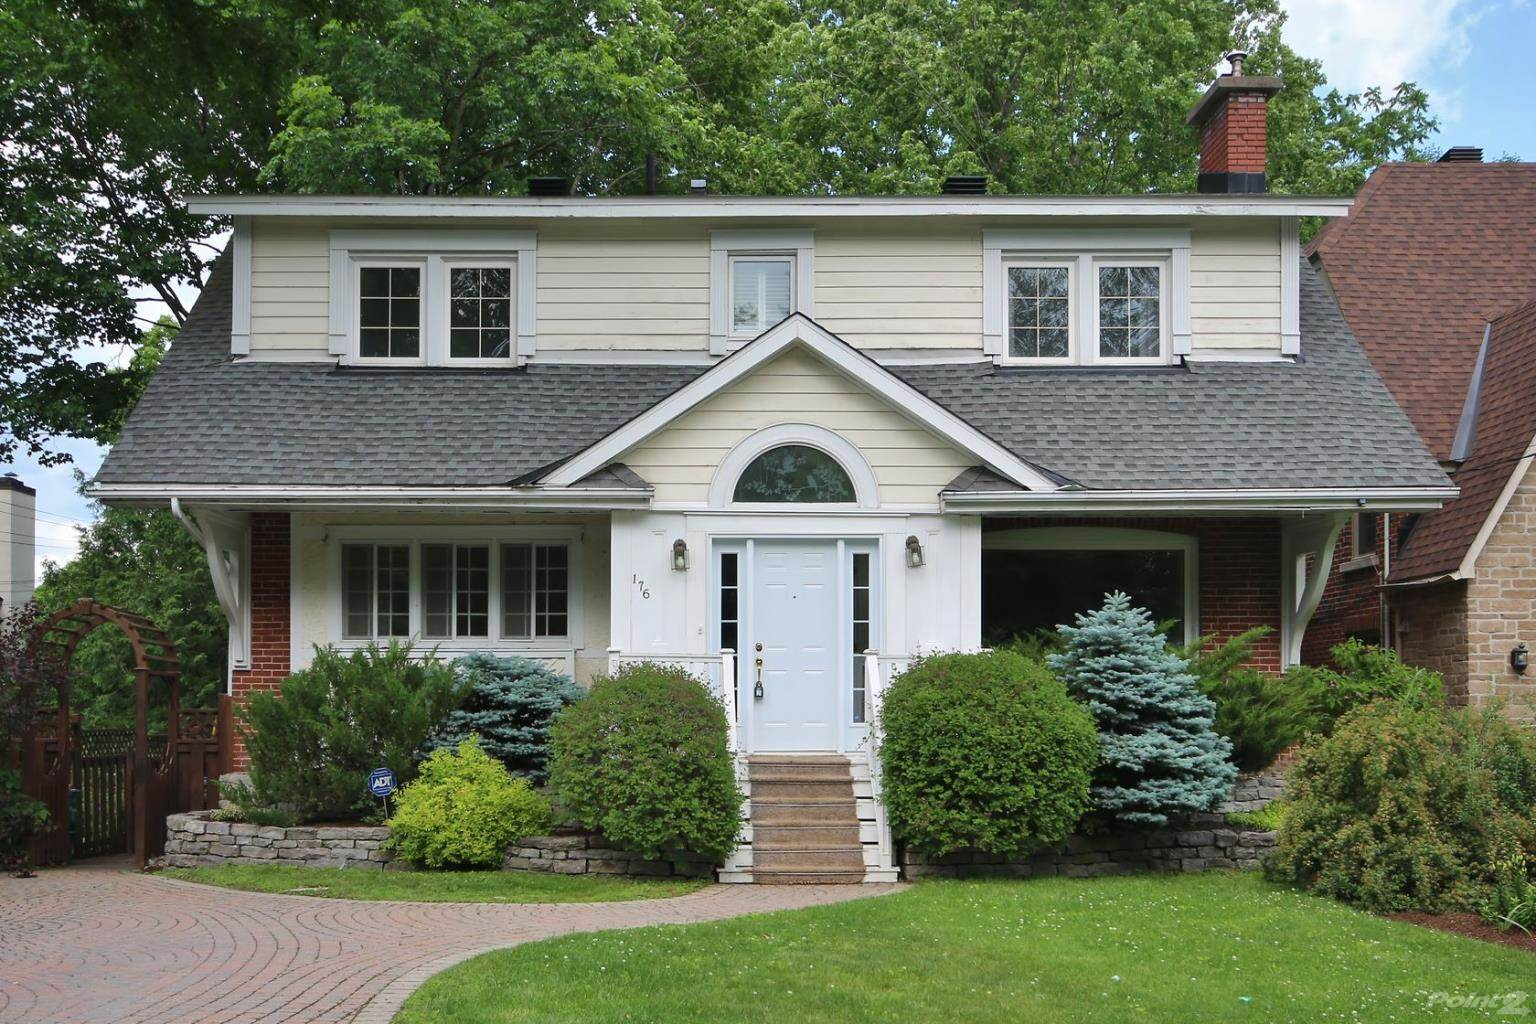 Groovy Ottawa Real Estate Find Houses And Condominiums For Rent In Home Interior And Landscaping Ologienasavecom